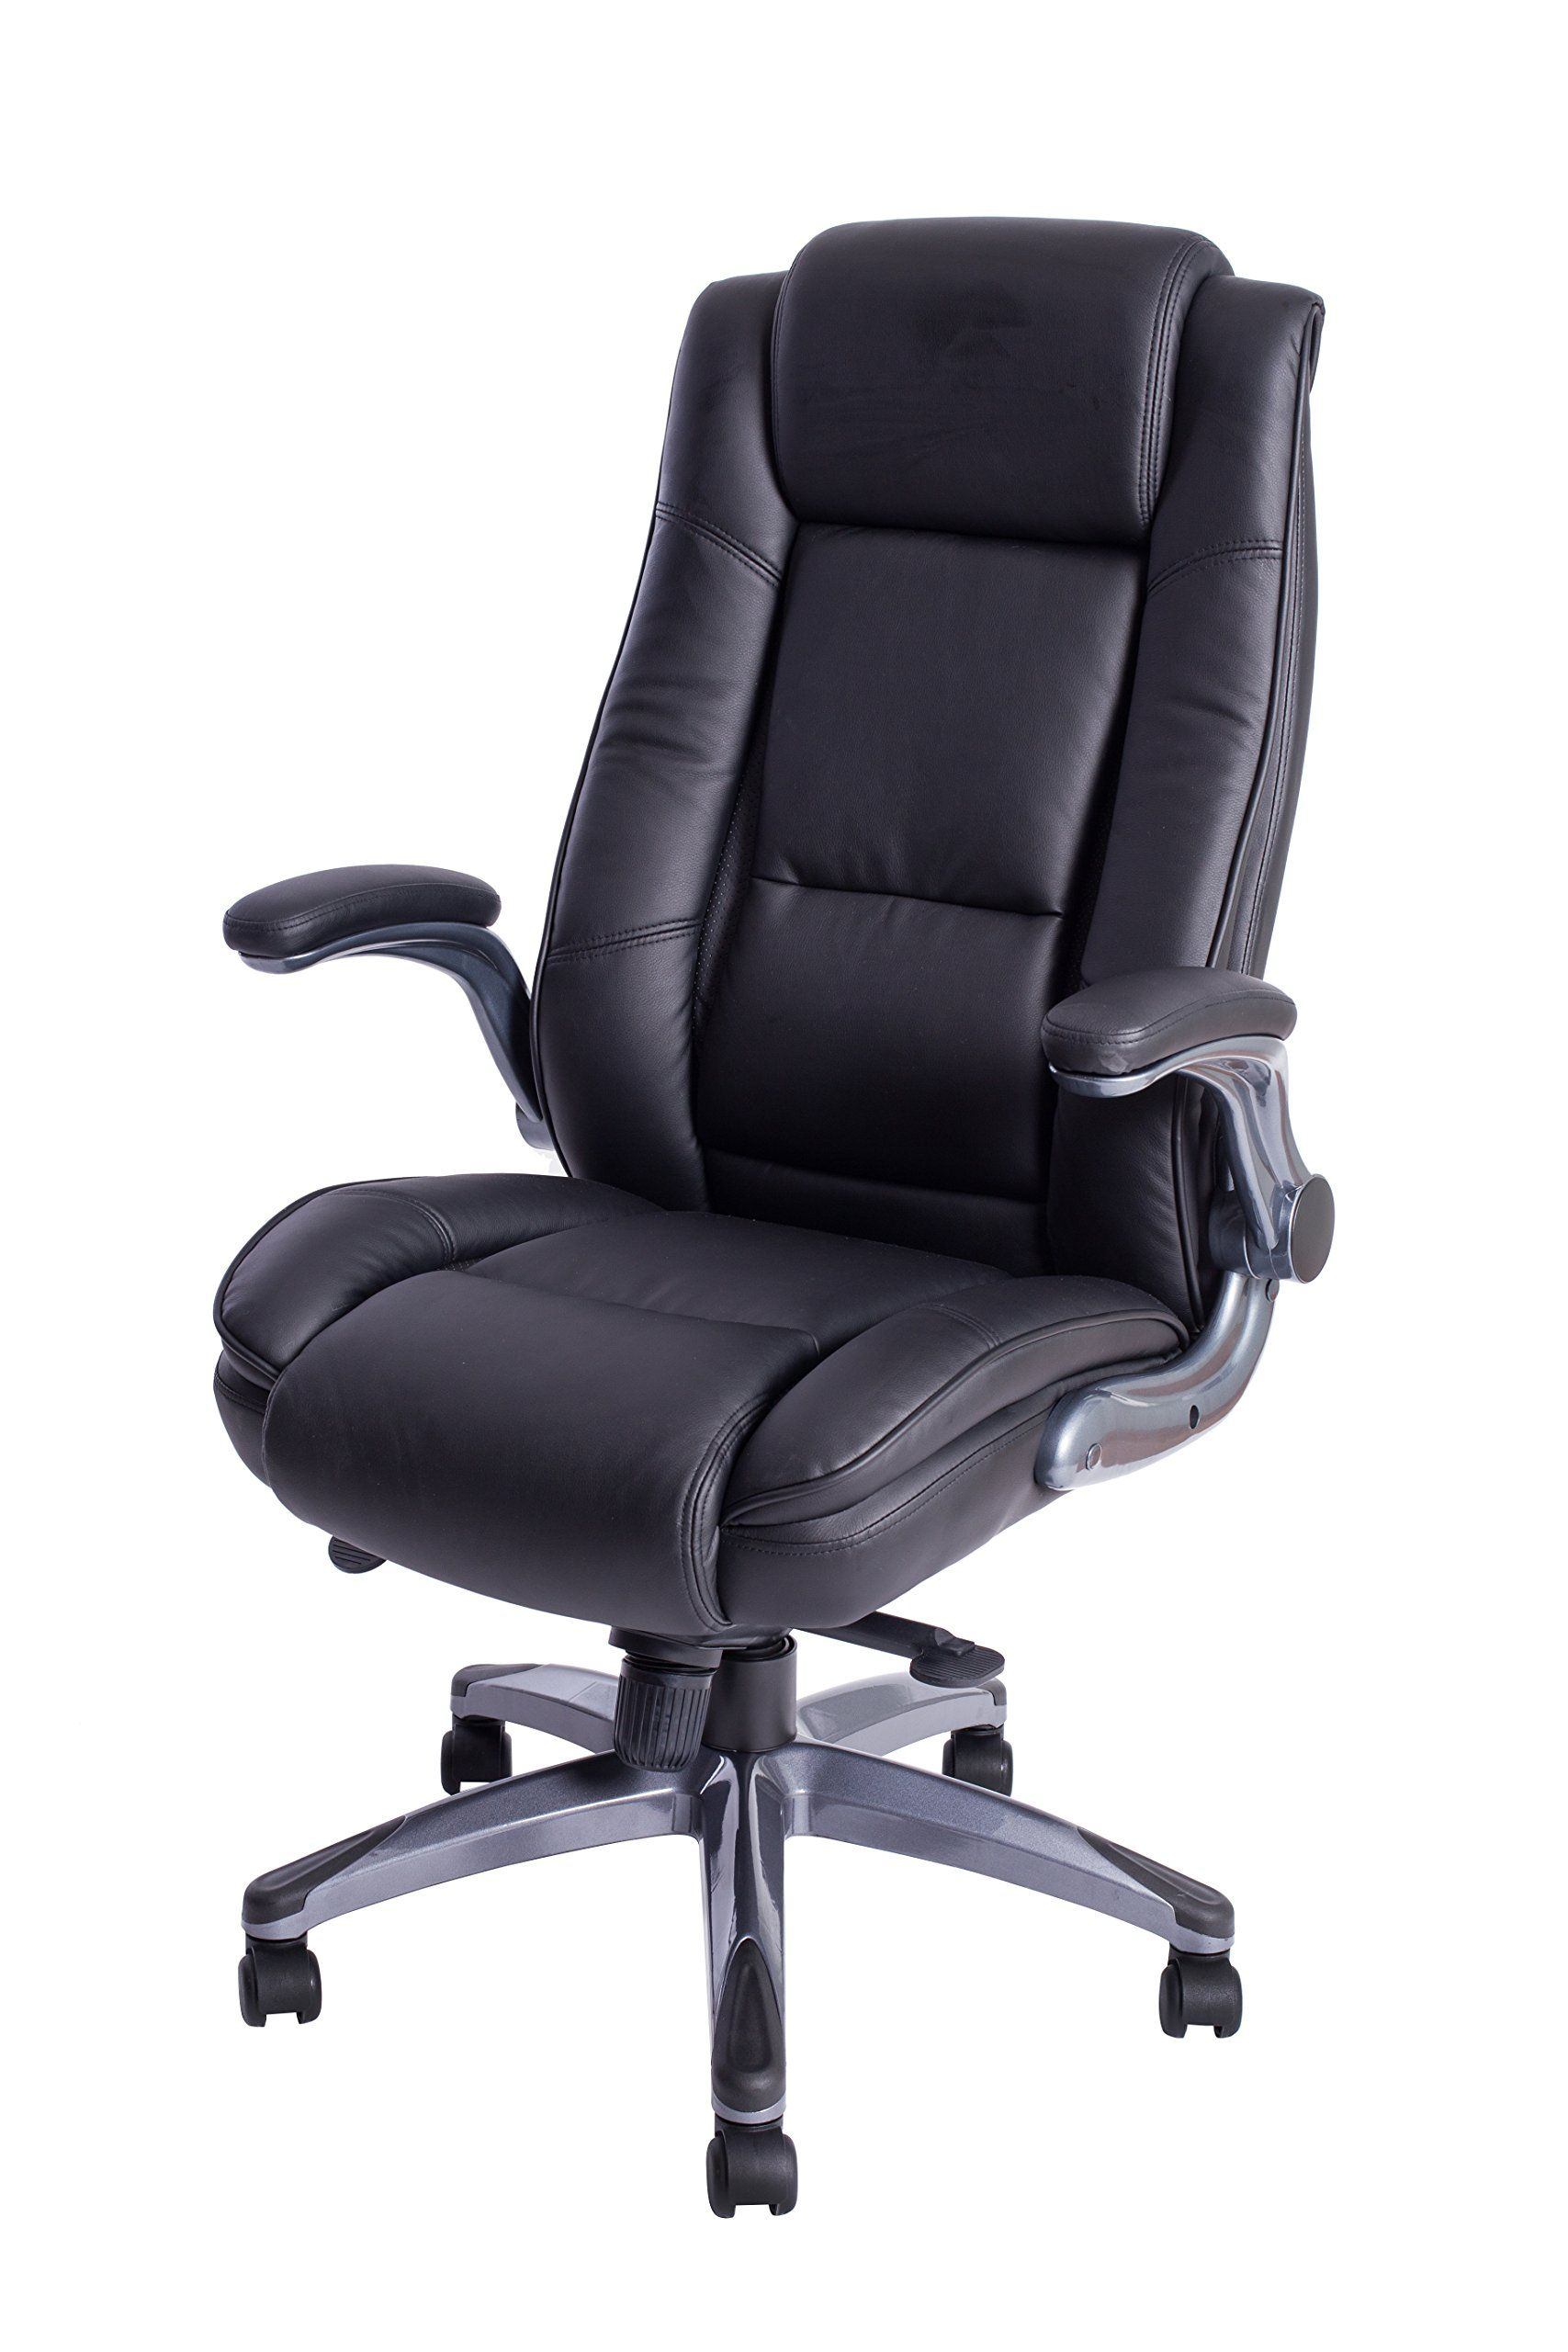 chairs desk chair herman computer miller office aeron